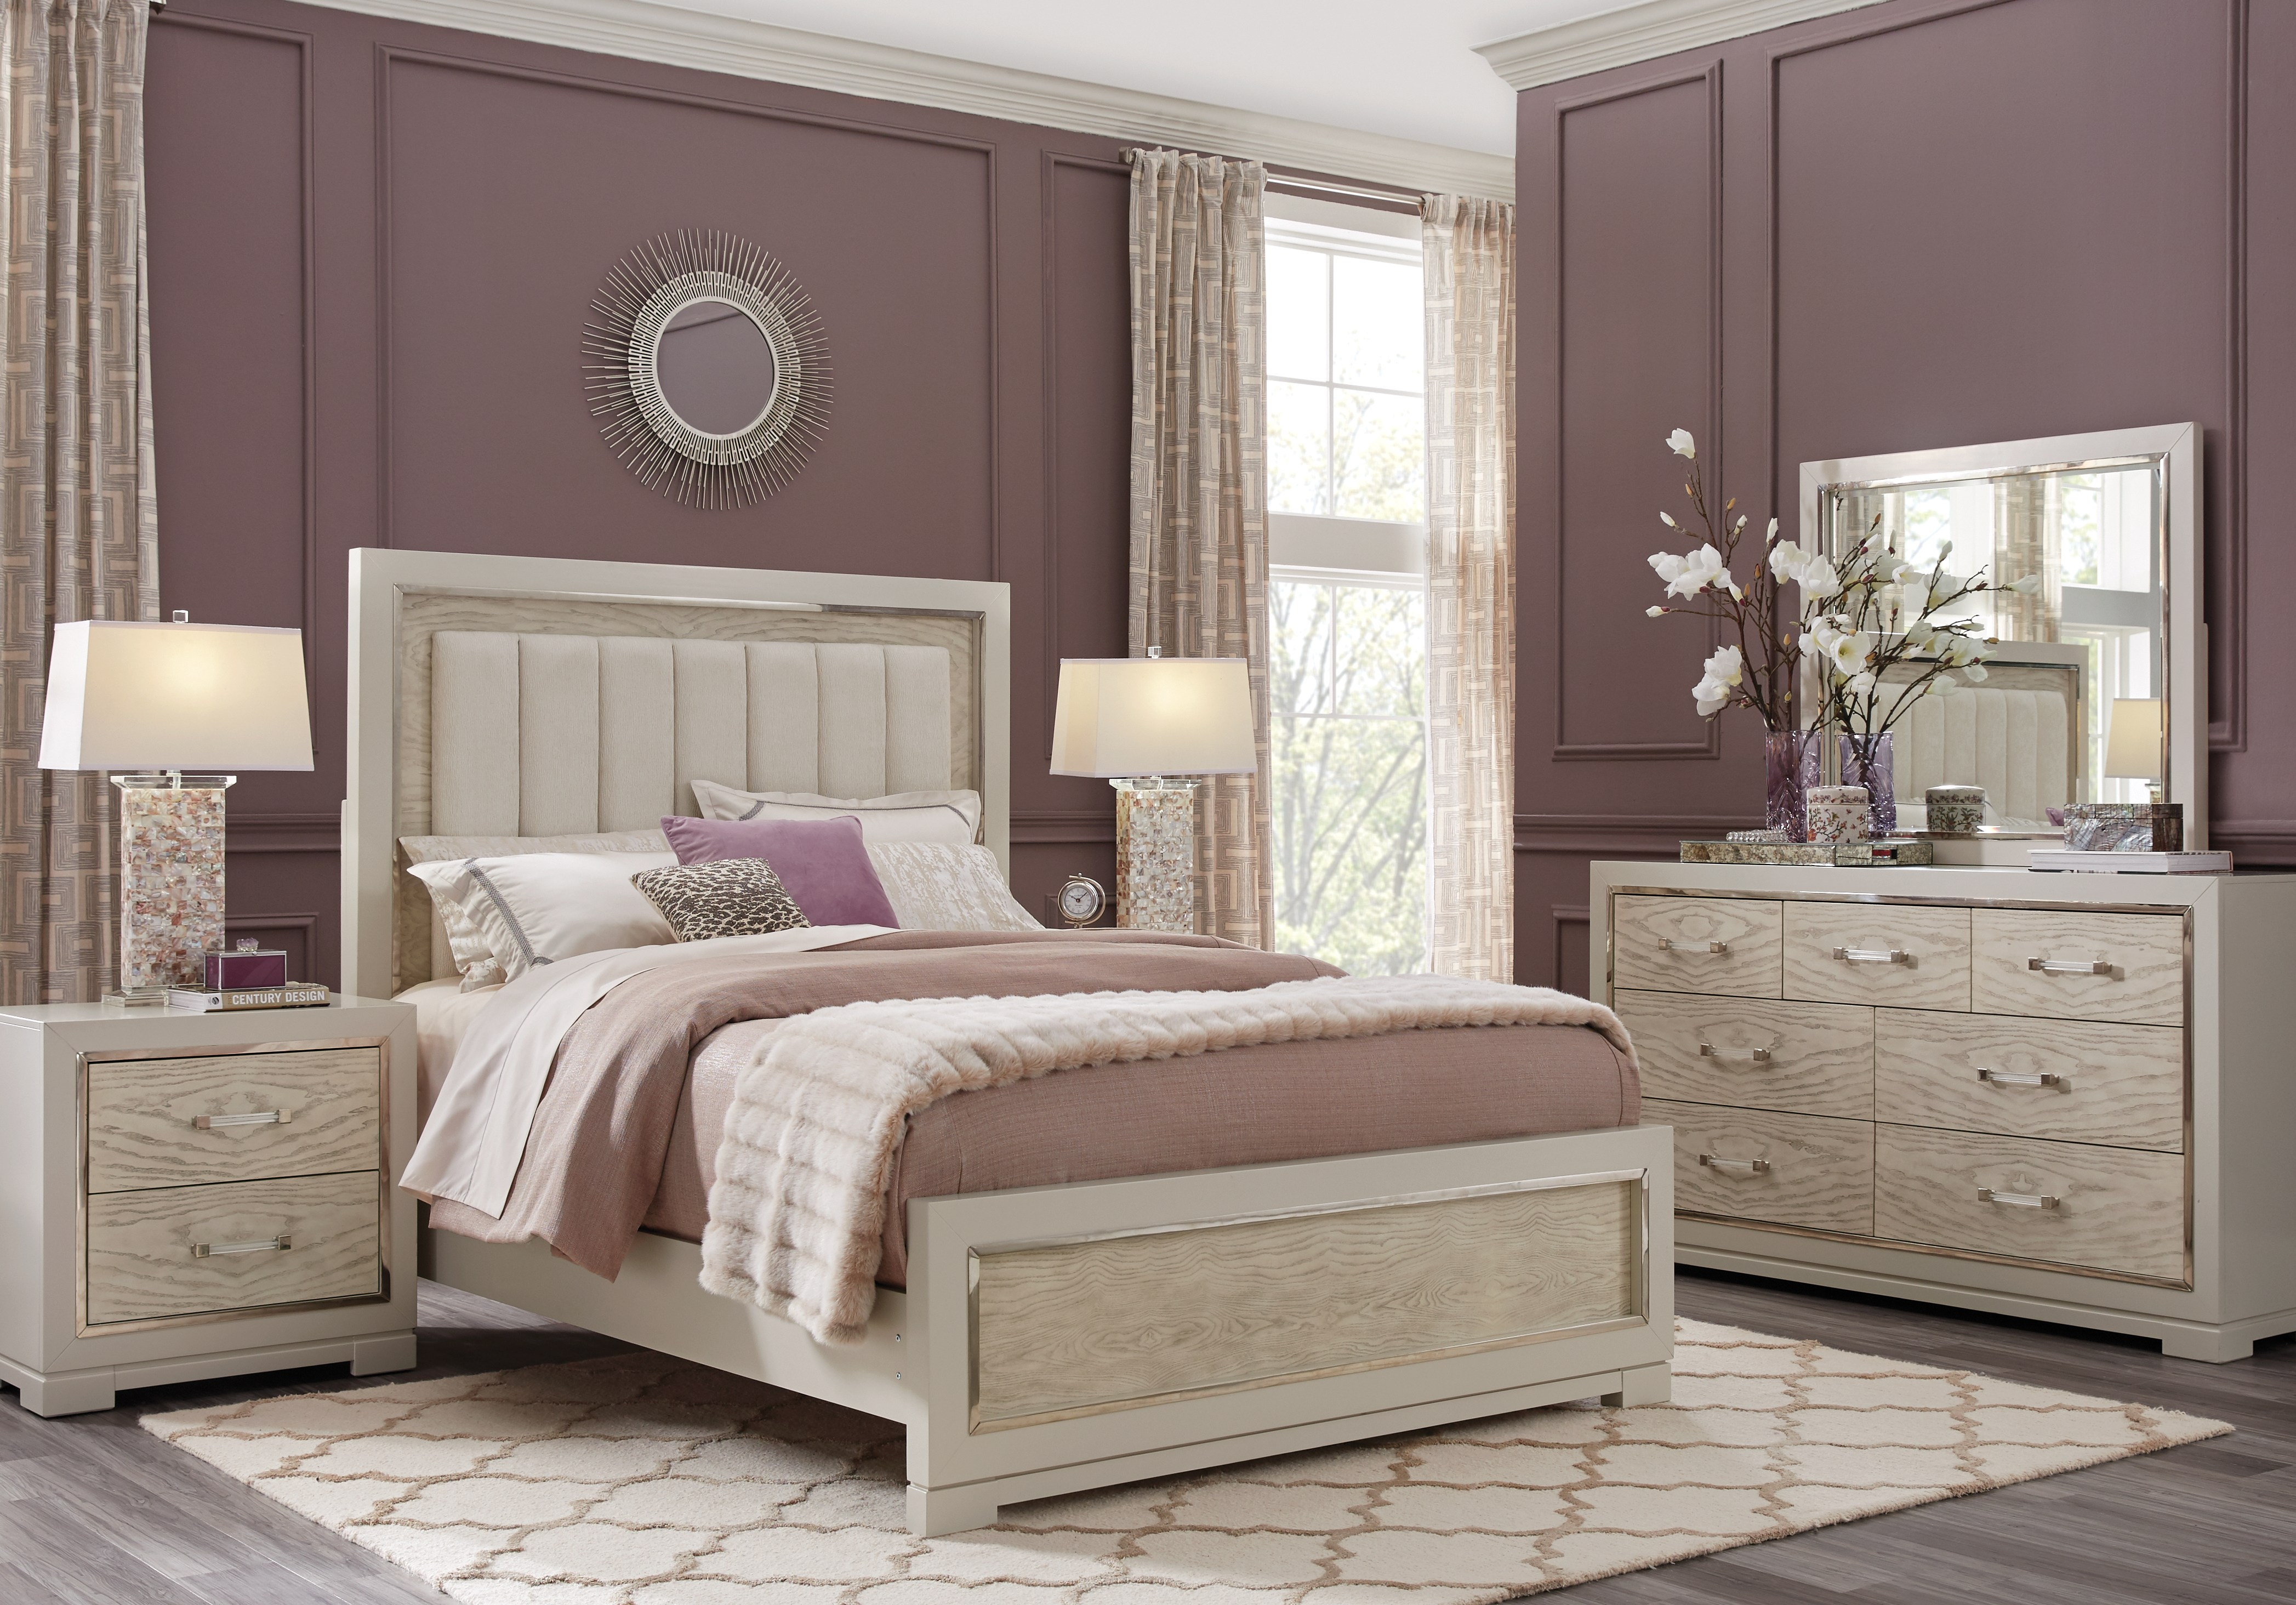 Queen Bedroom Sets1 - 48 of 154 Results